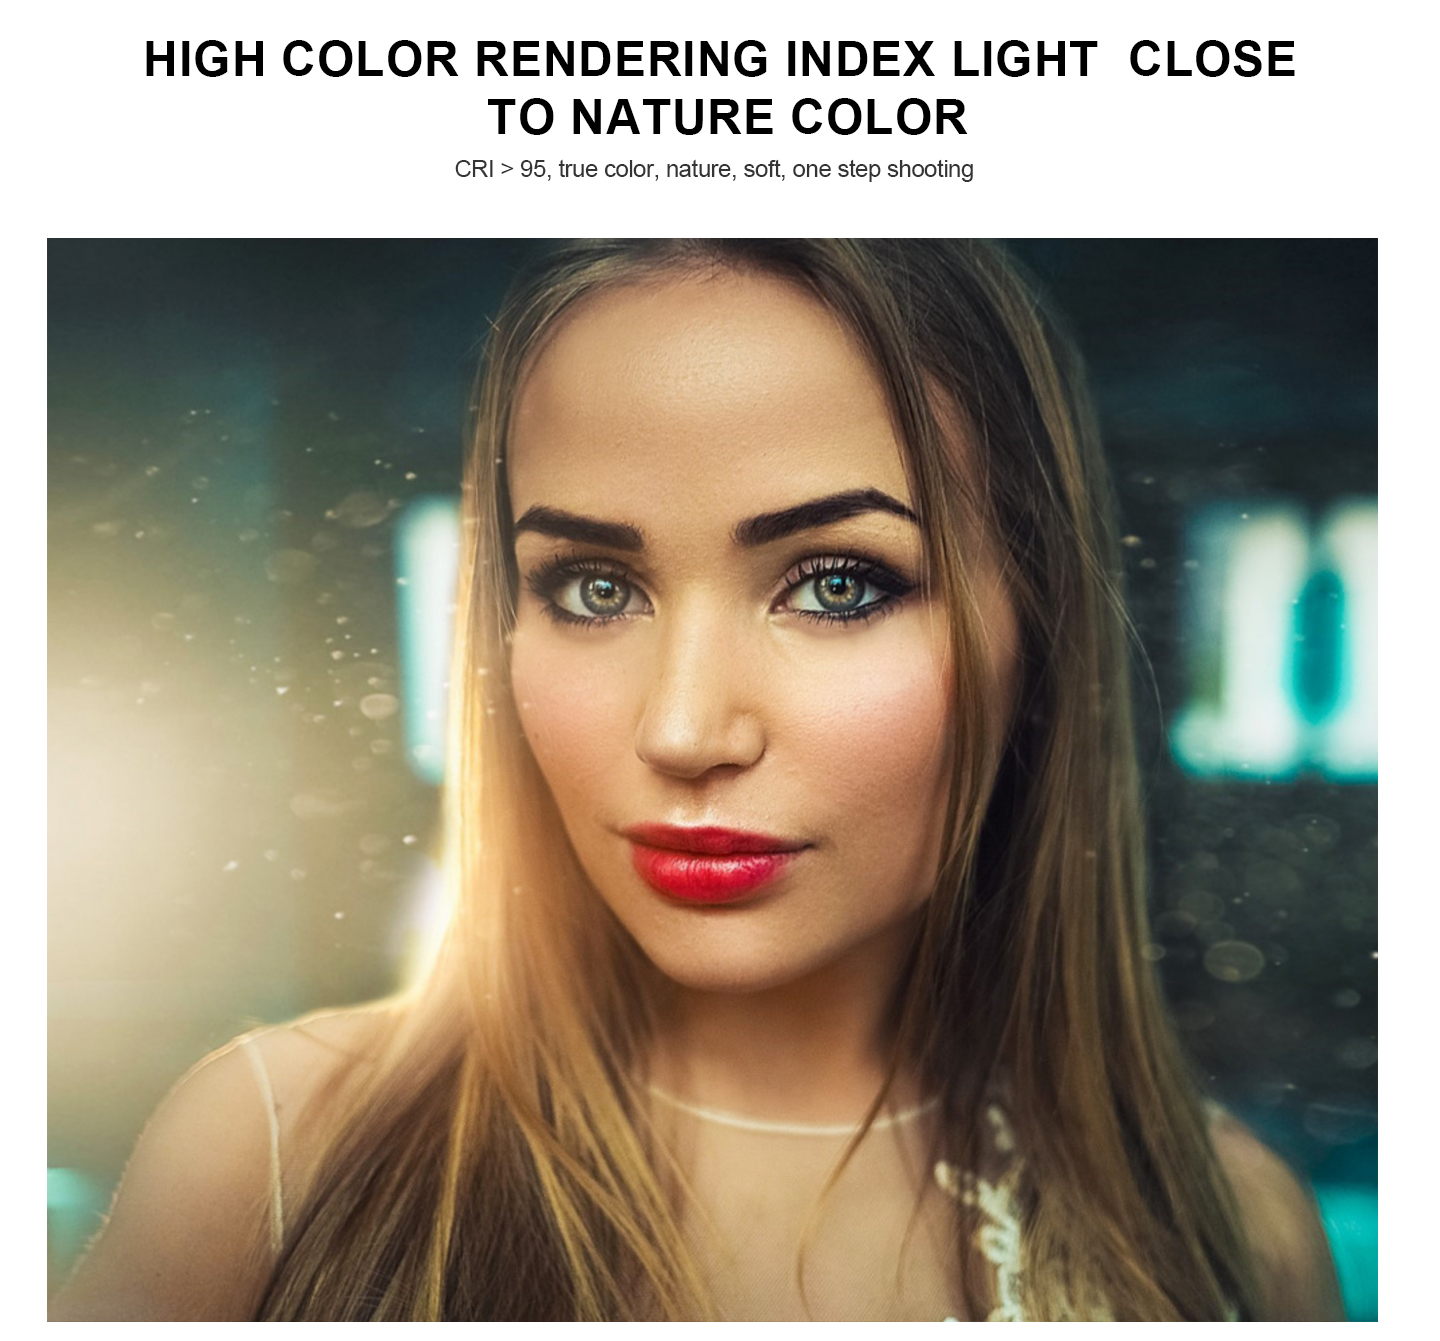 HGH COLOR RENDERING INDEX LIGHT CLOSE TO NATURE COLOR